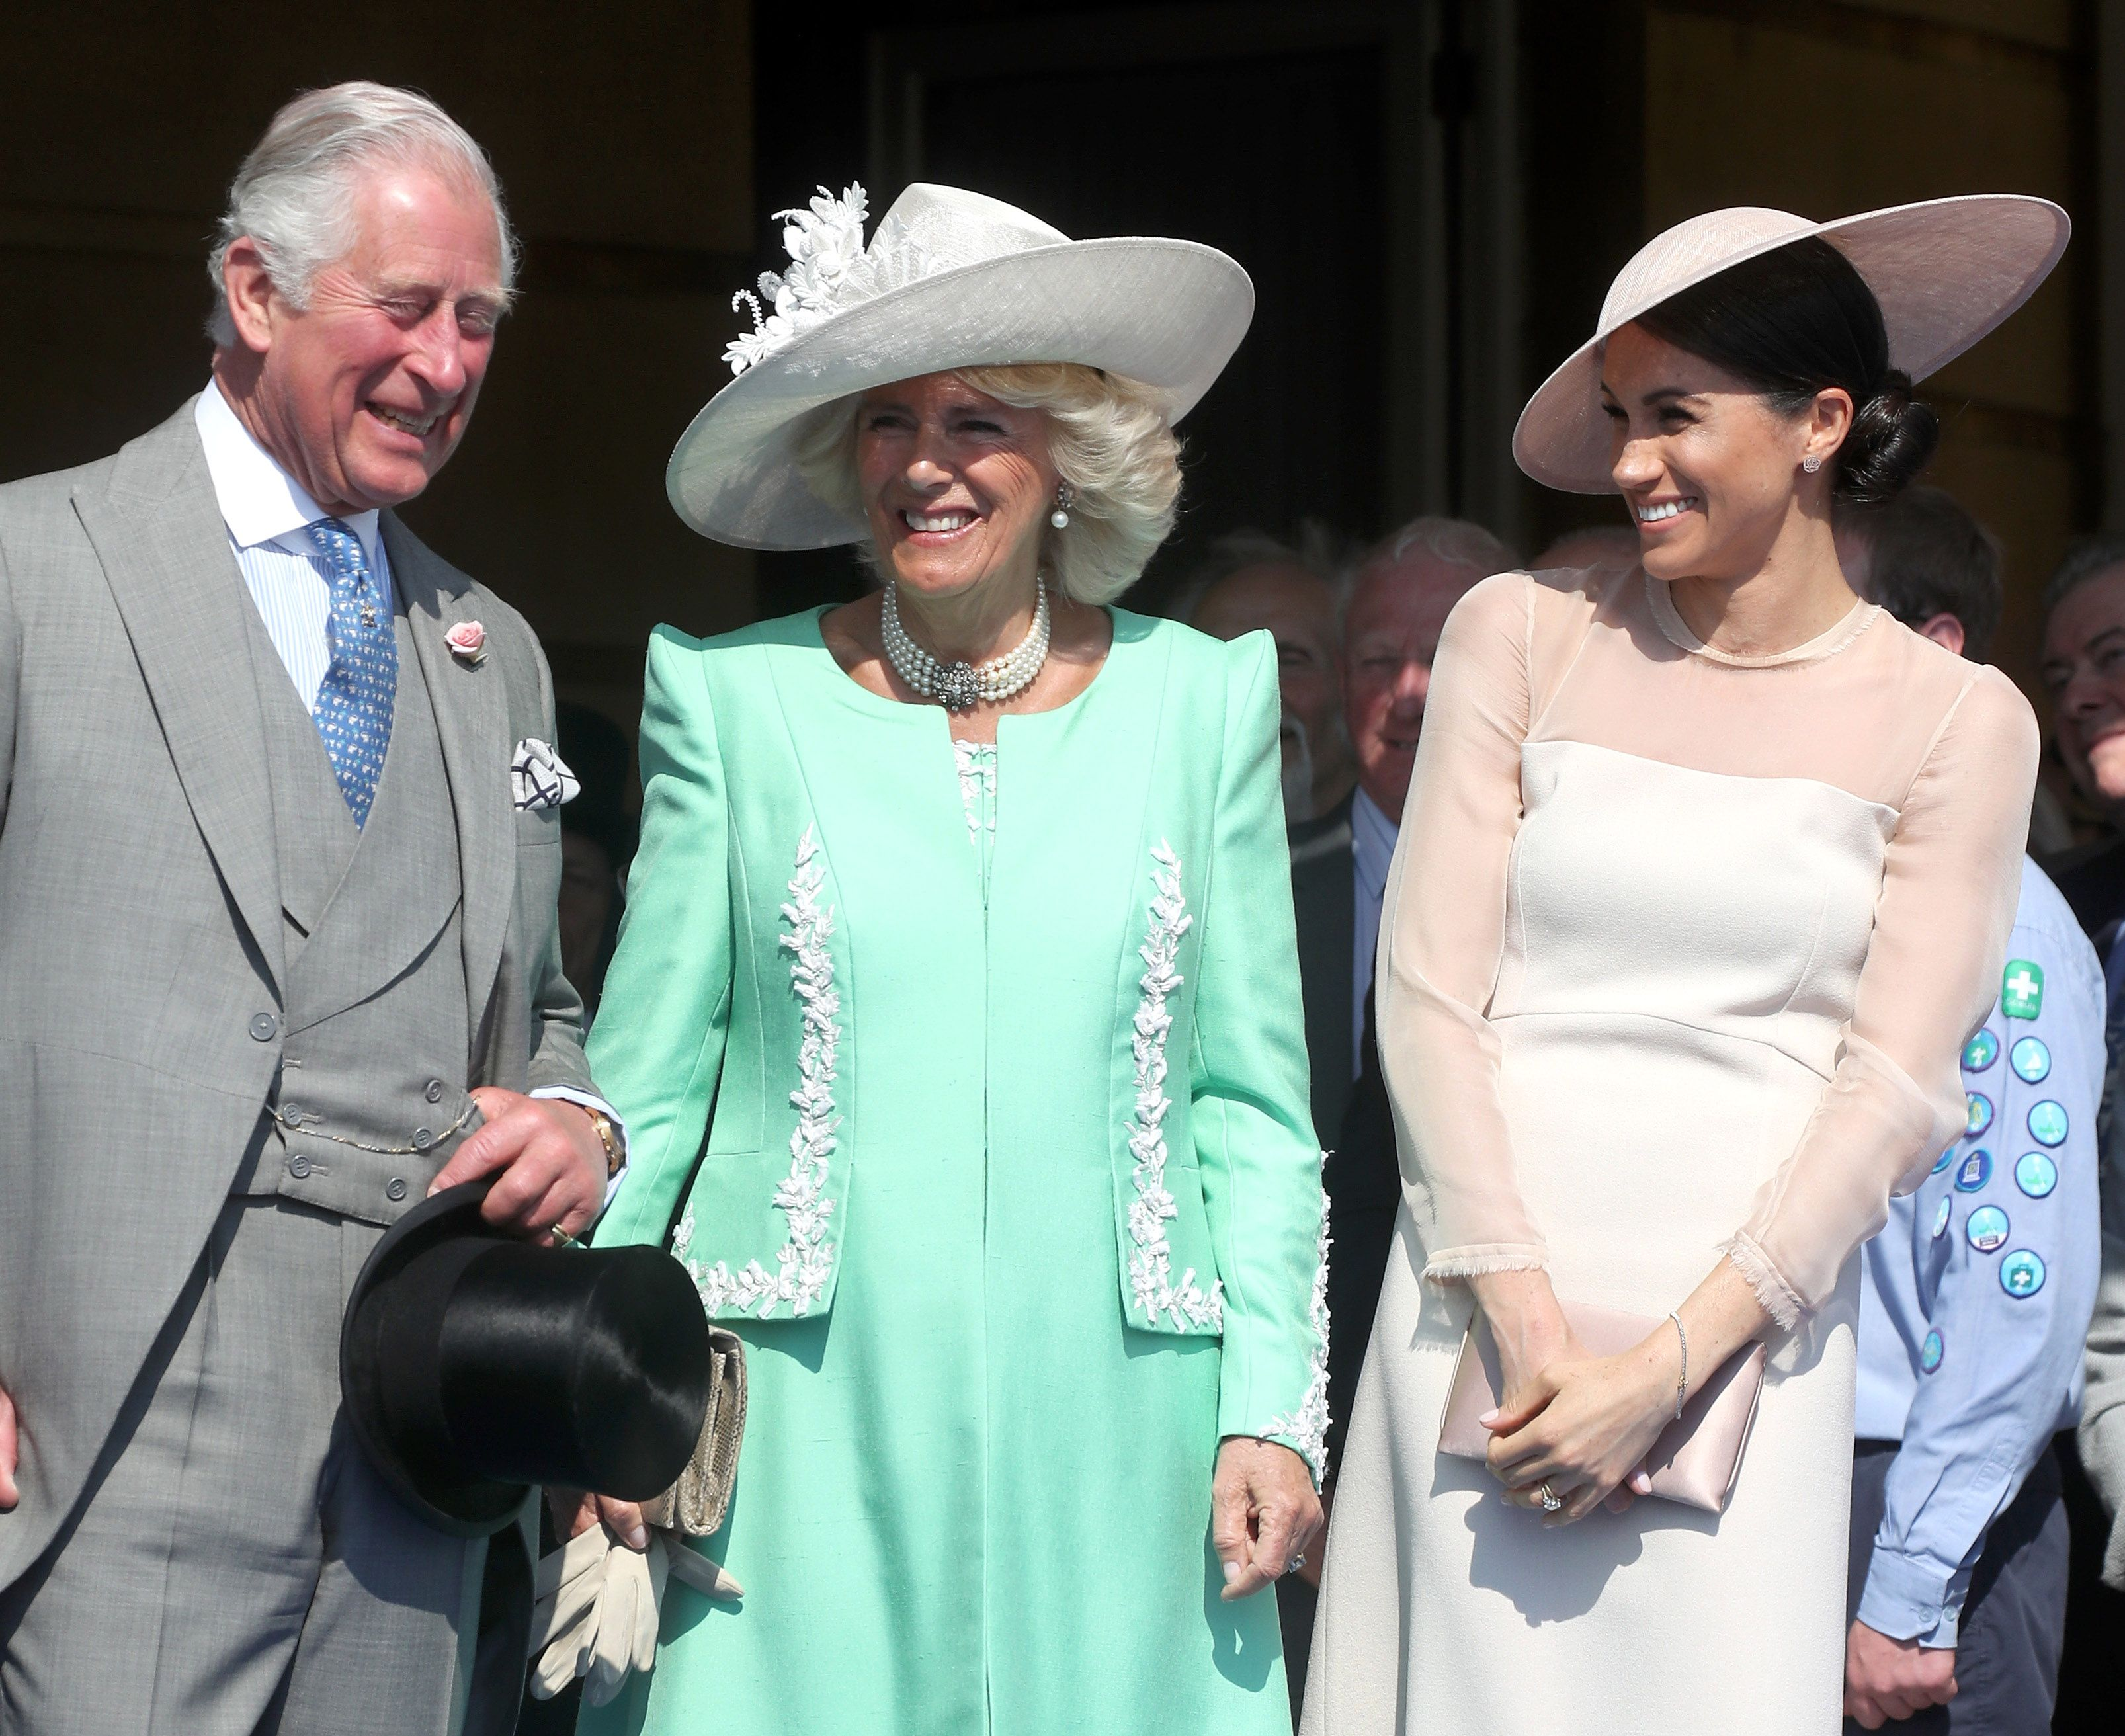 Prince Charles Reportedly Thinks Meghan Markle Is The Best Thing That Happened to Prince Harry advise